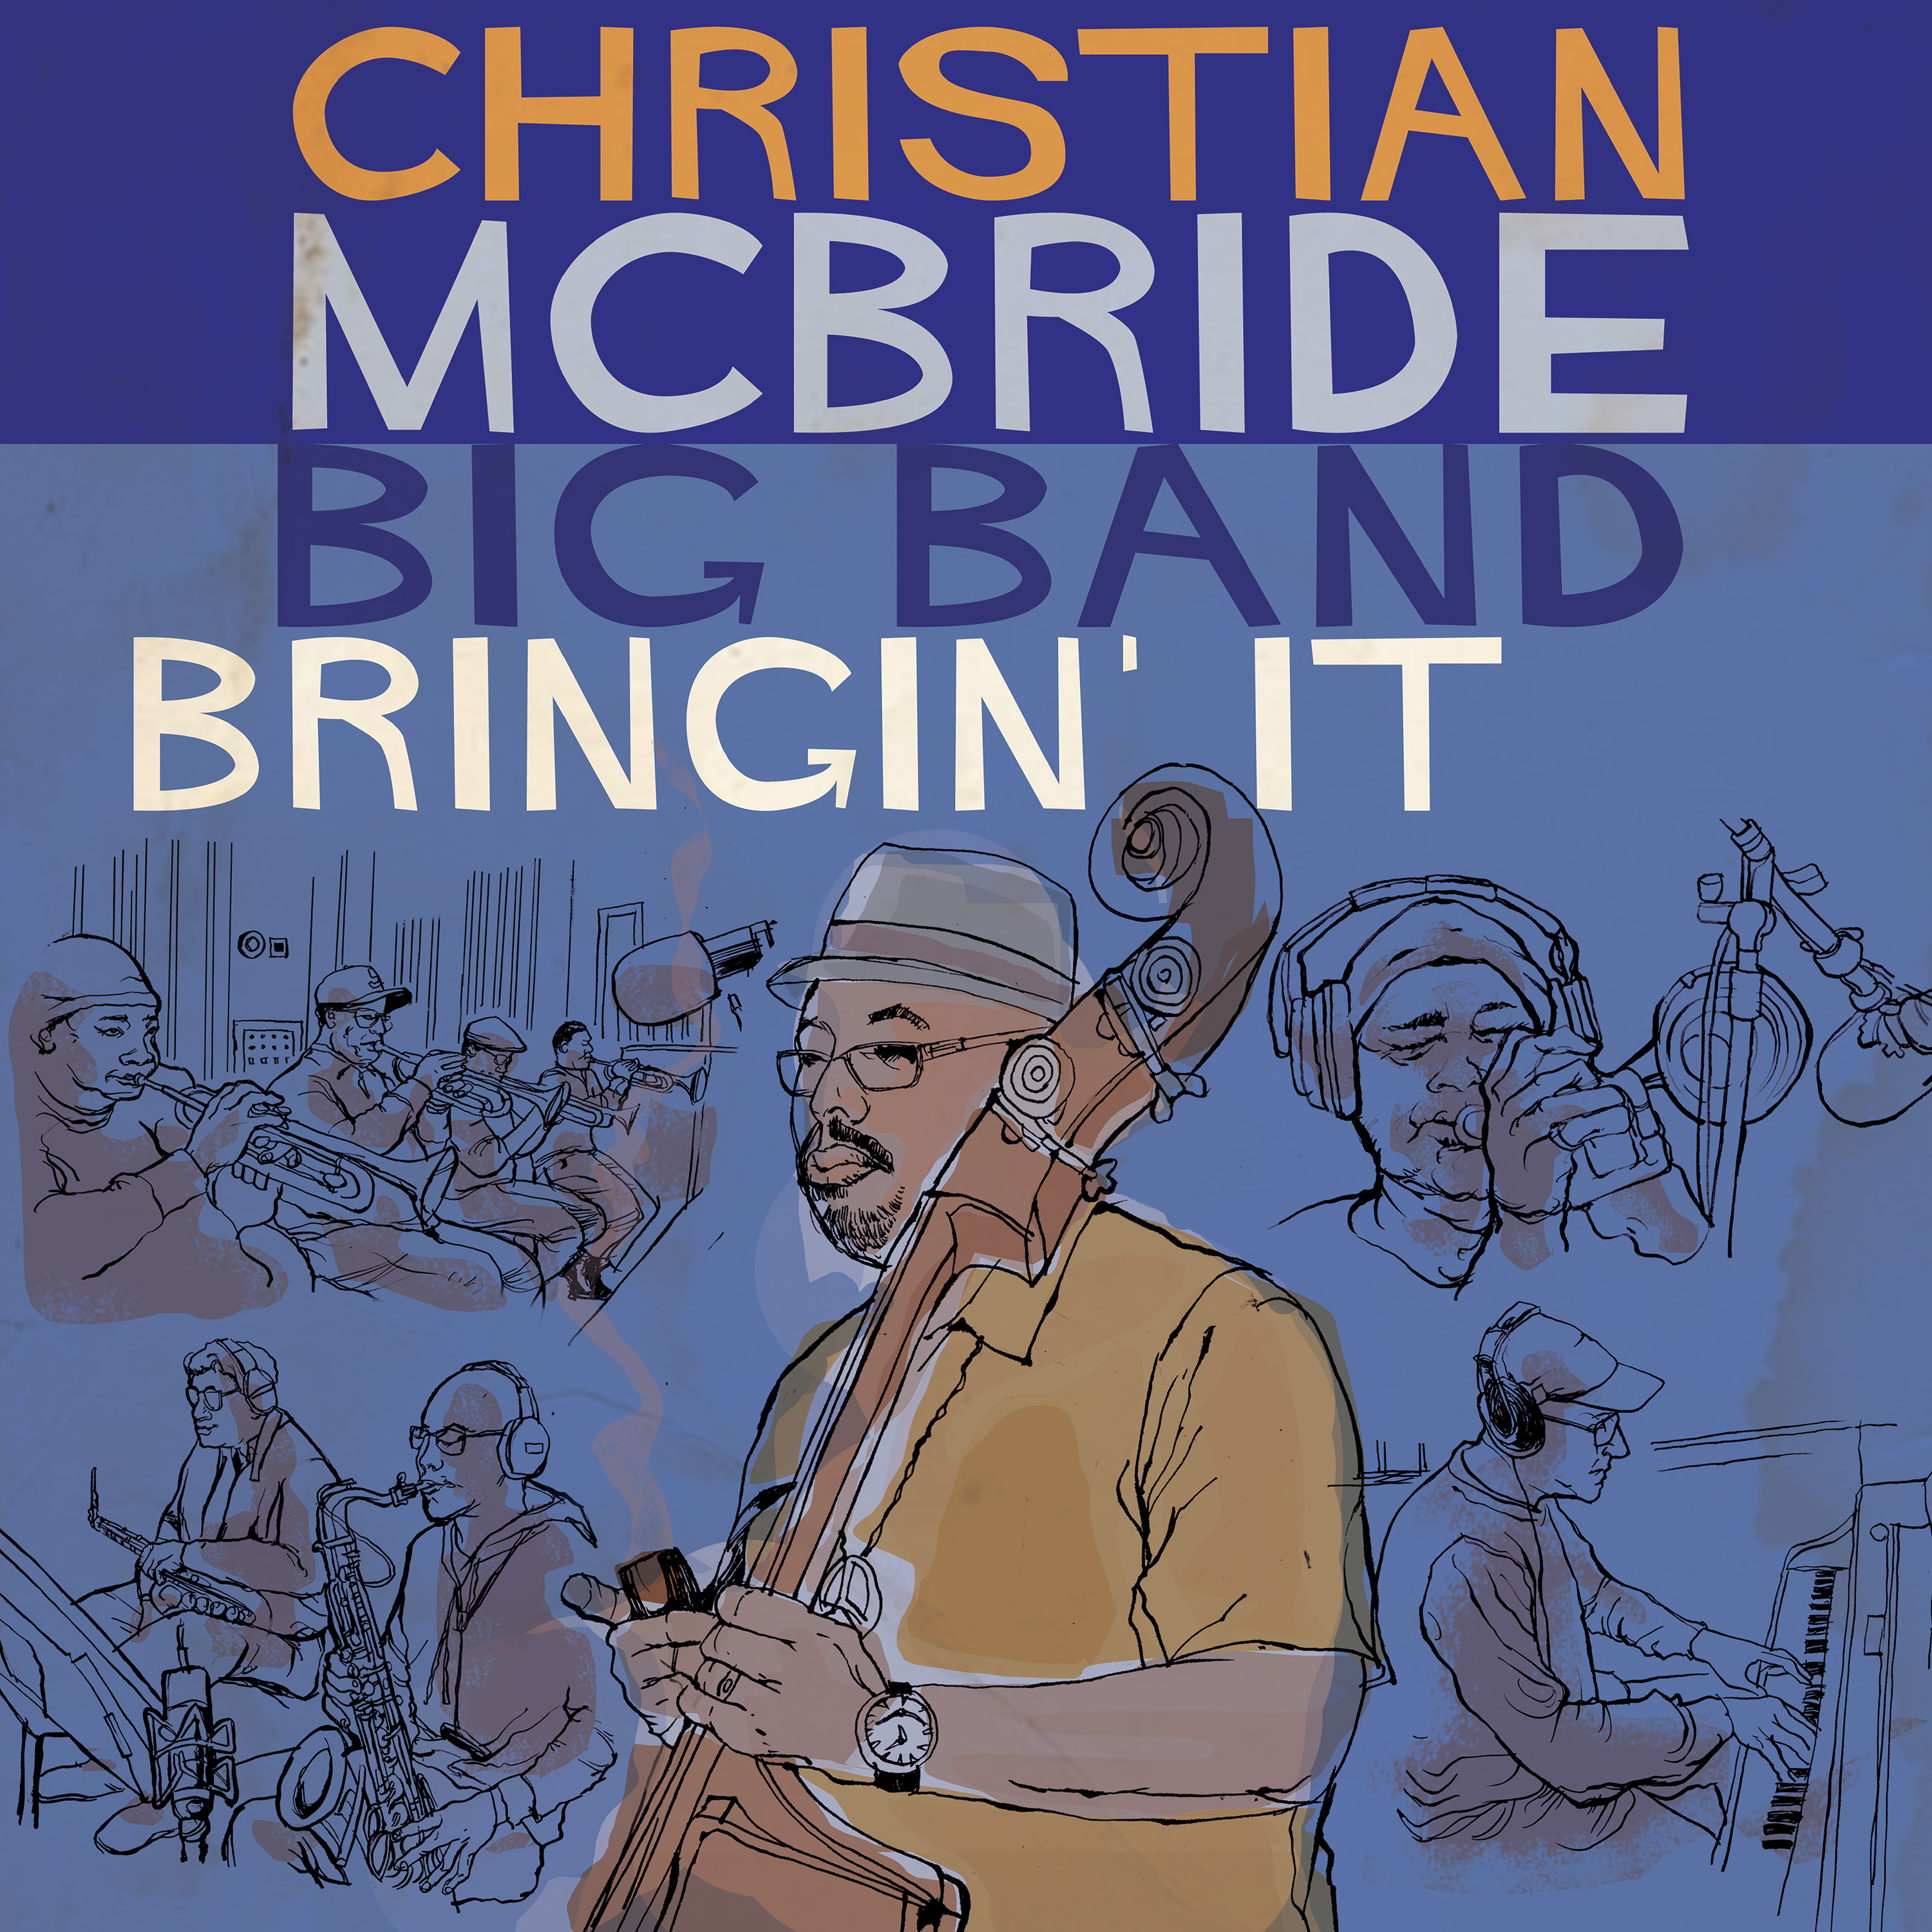 Christian McBride Big Band - Bringin' It - Cover Image